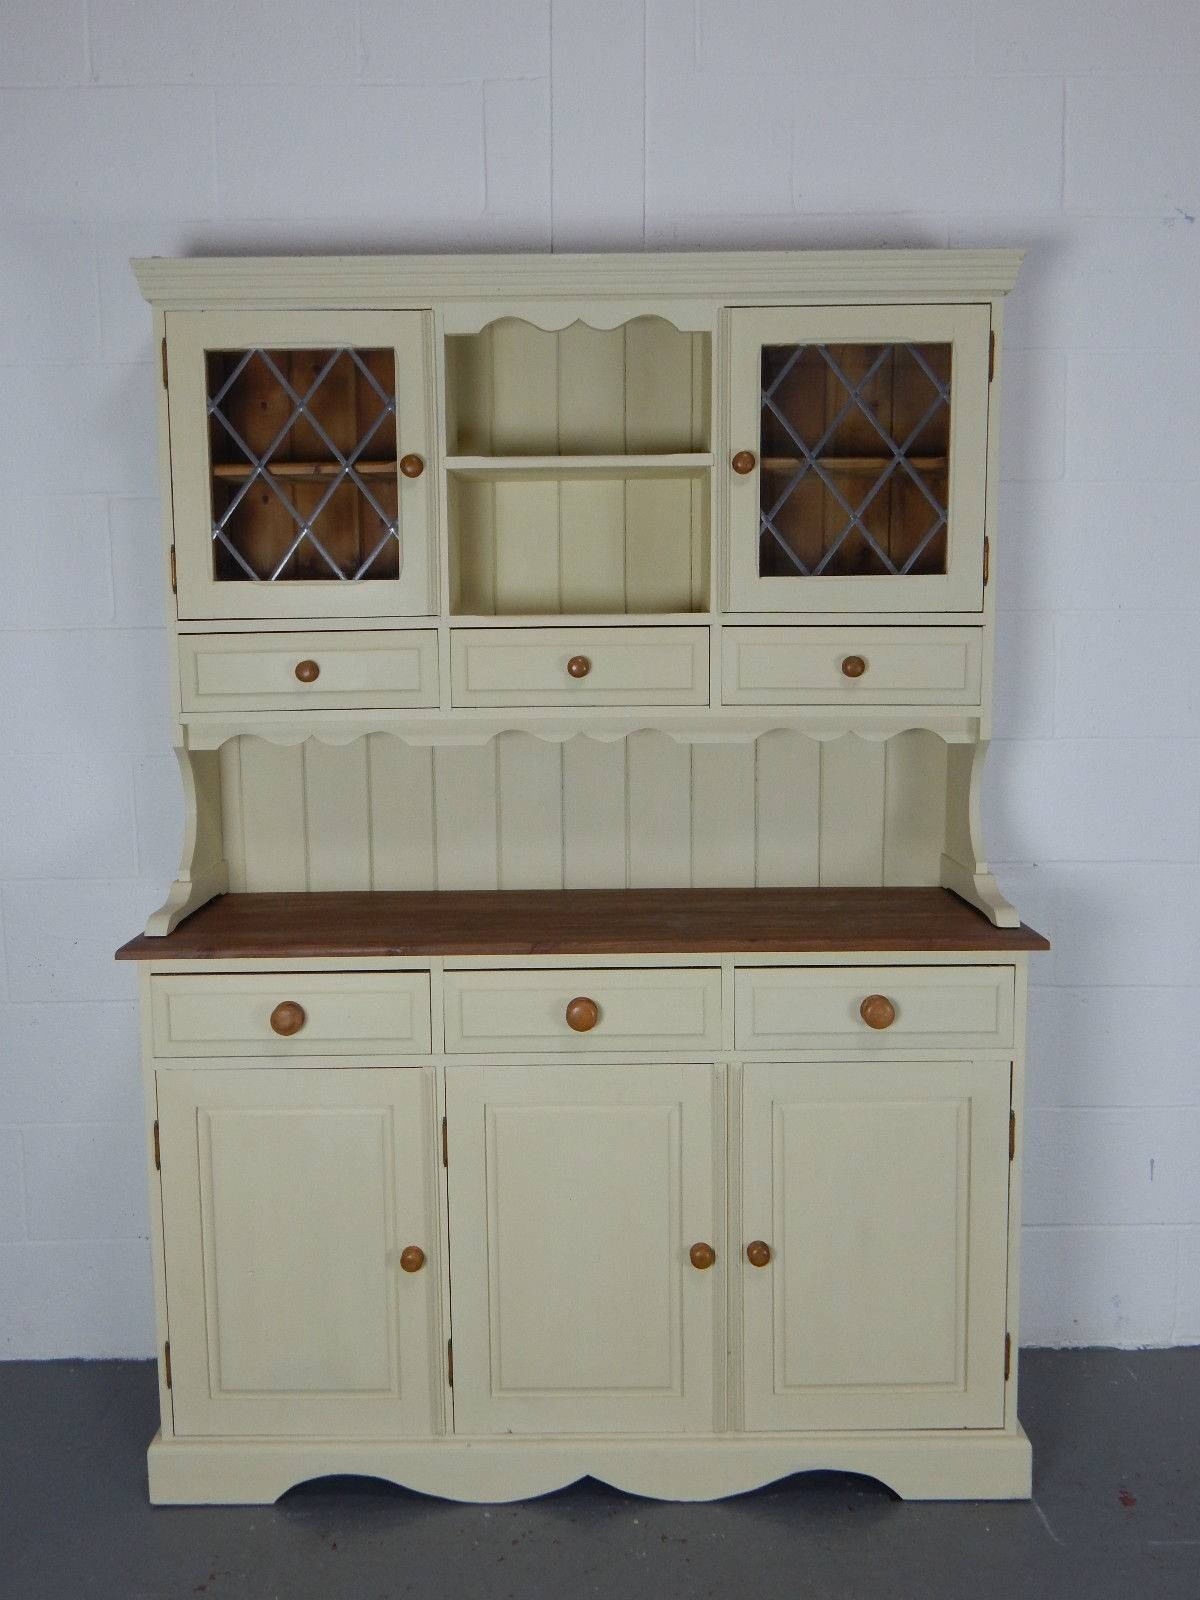 4.5Ft Solid Pine Kitchen Welsh Dresser In Annie Sloan Cream intended for Kitchen Dressers and Sideboards (Image 1 of 15)